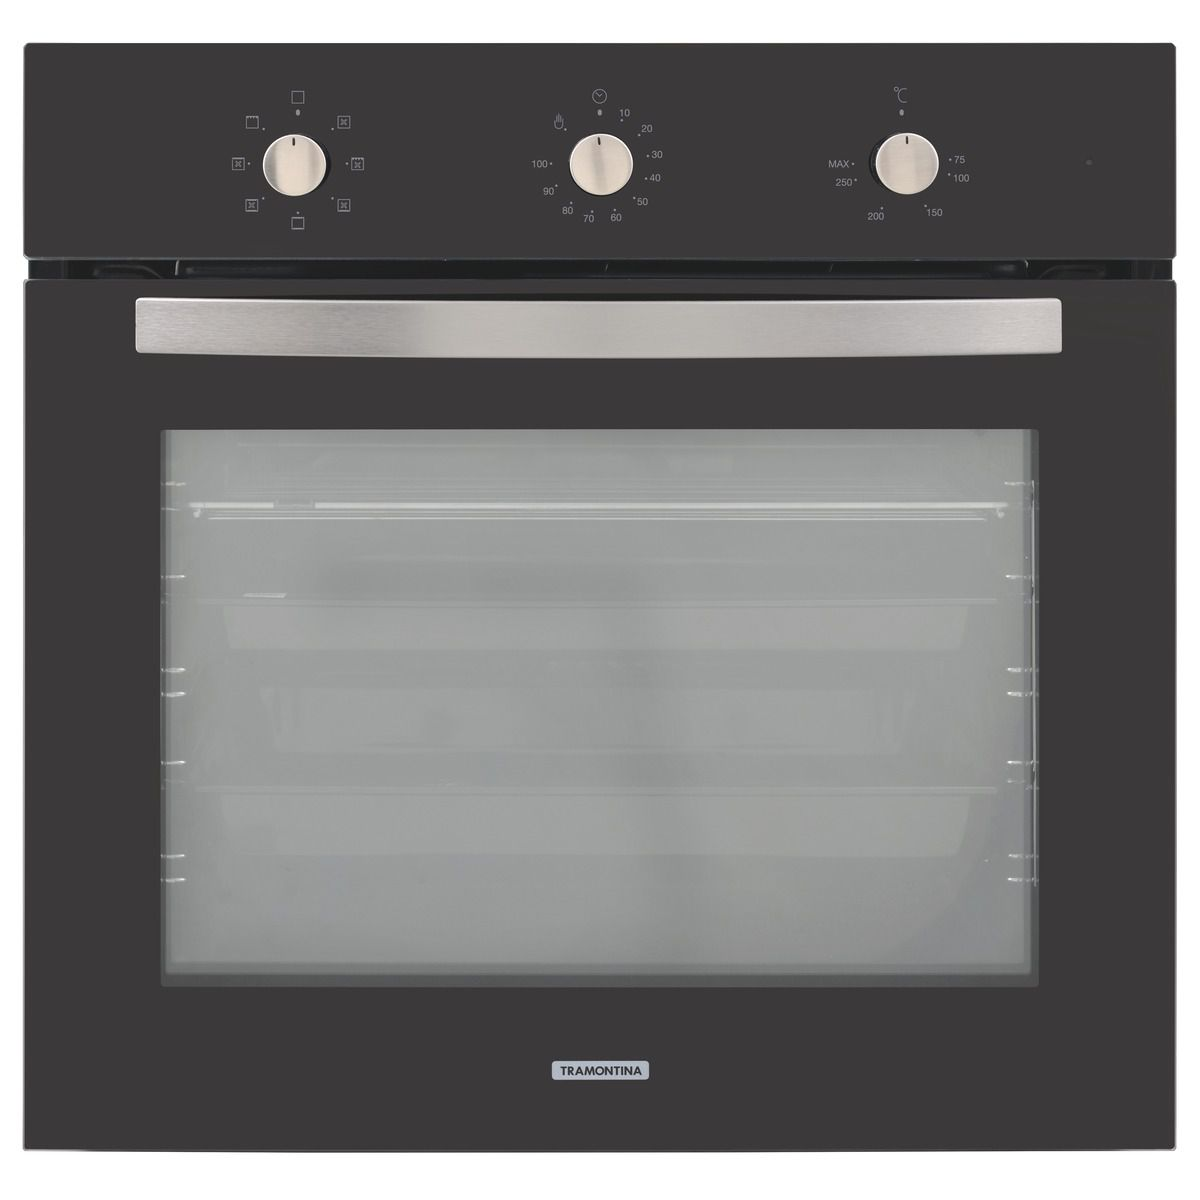 FORNO ELÉTRICO 71 LITROS NEW GLASS COOK B 60 F7 94867220 - TRAMONTINA